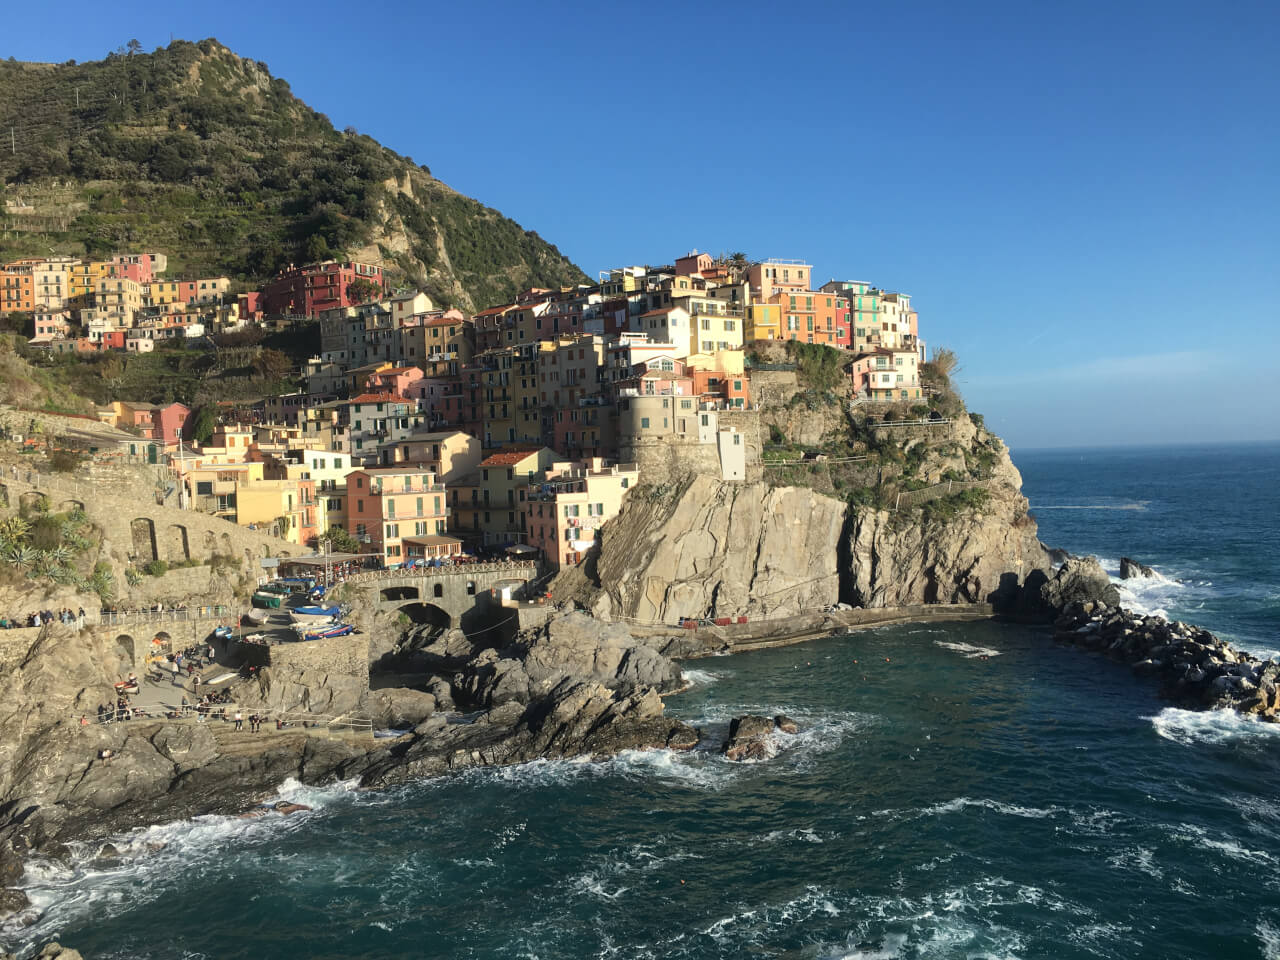 The first two weeks of university & a trip to the Cinque Terre!